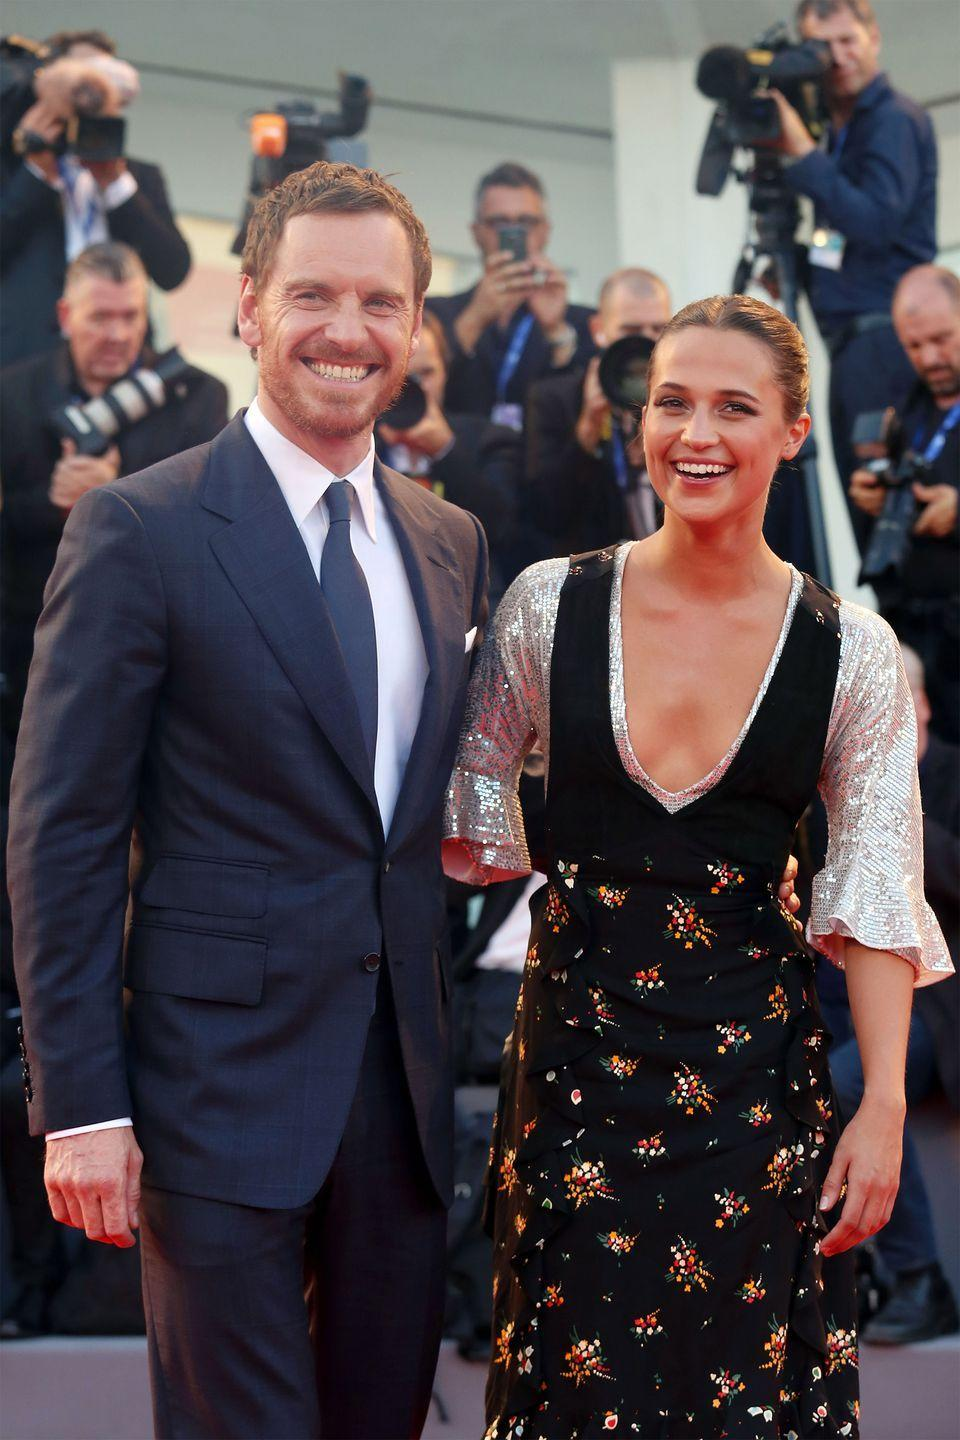 "<p>Alicia Vikander, 30, and husband Michael Fassbender, 41, started dating back in 2014 after meeting on the set of <em>The Light Between Oceans</em>. The lovebirds kept it low-key for the cameras at the beginning of their relationship, but were outed as a newlyweds after they returned from their <a href=""https://www.harpersbazaar.com/celebrity/latest/a13031336/alicia-vikander-michael-fassbender-married/"" rel=""nofollow noopener"" target=""_blank"" data-ylk=""slk:incognito wedding in Ibiza"" class=""link rapid-noclick-resp"">incognito wedding in Ibiza</a> in 2017.</p>"